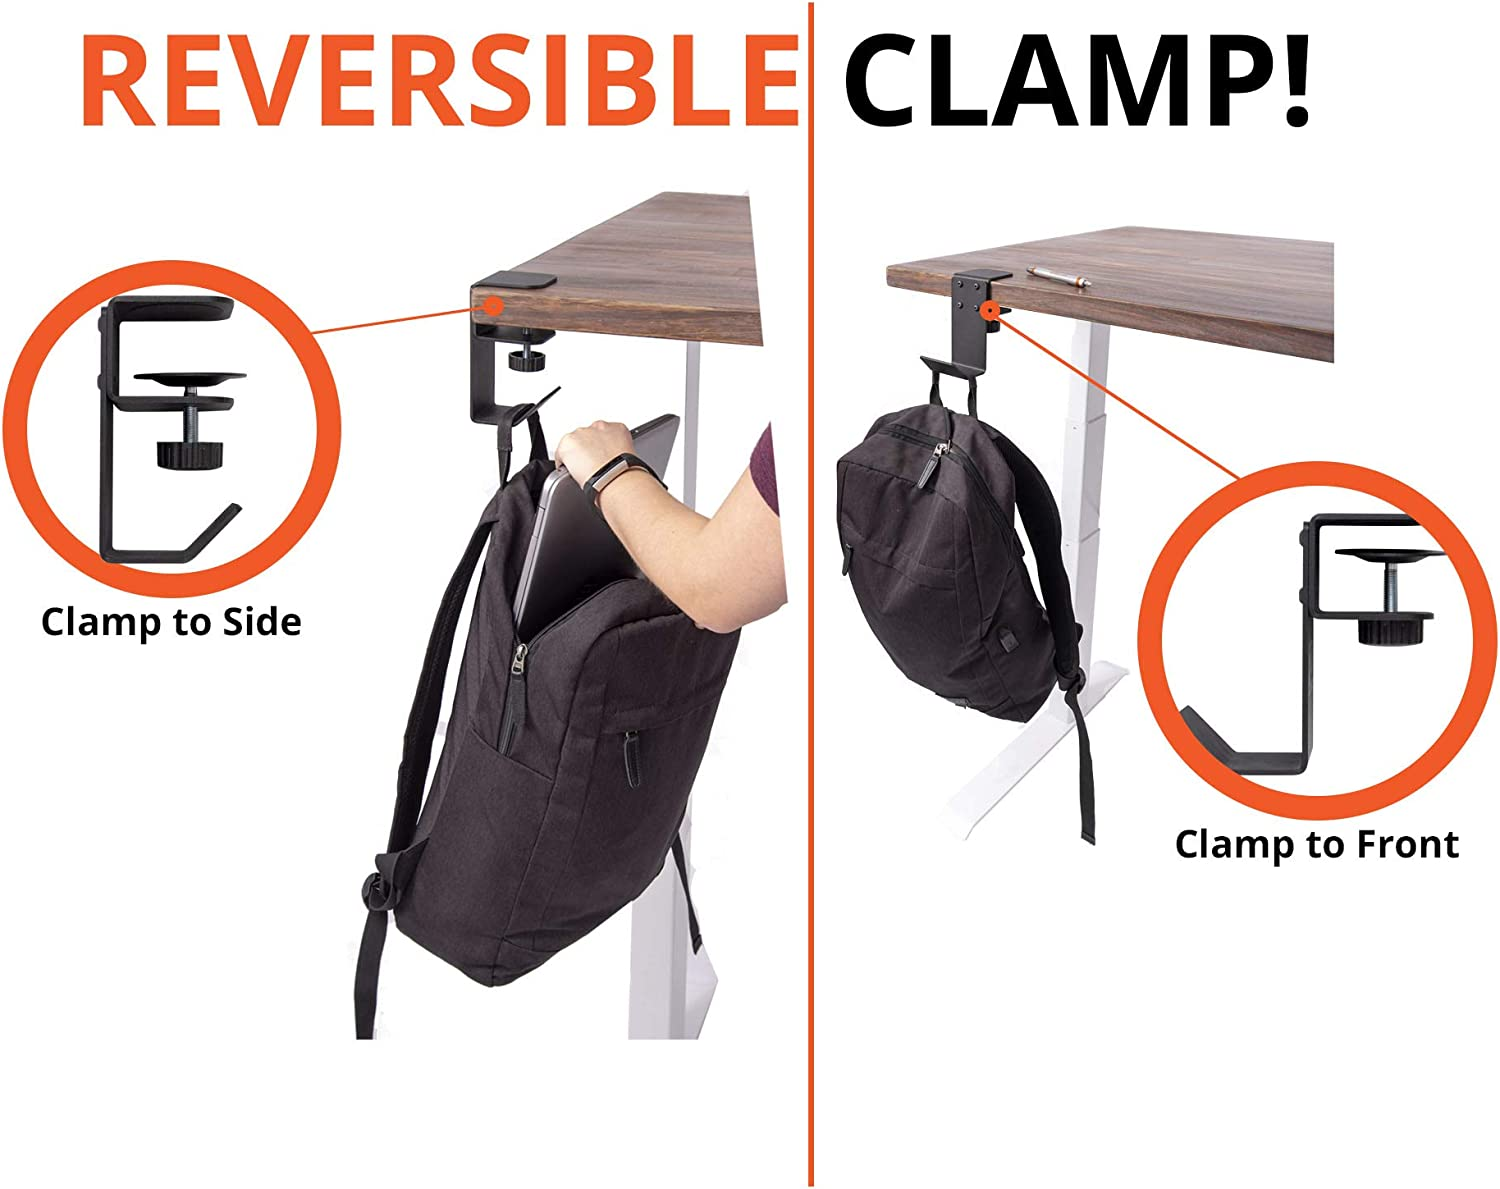 30 lb. Capacity Stand Up Desk Store Clamp-On Under Desk Headphone Holder//Backpack Hook//Purse Hook Black Provides a Convenient Place to Hang Headsets or Bags to Reduce Clutter